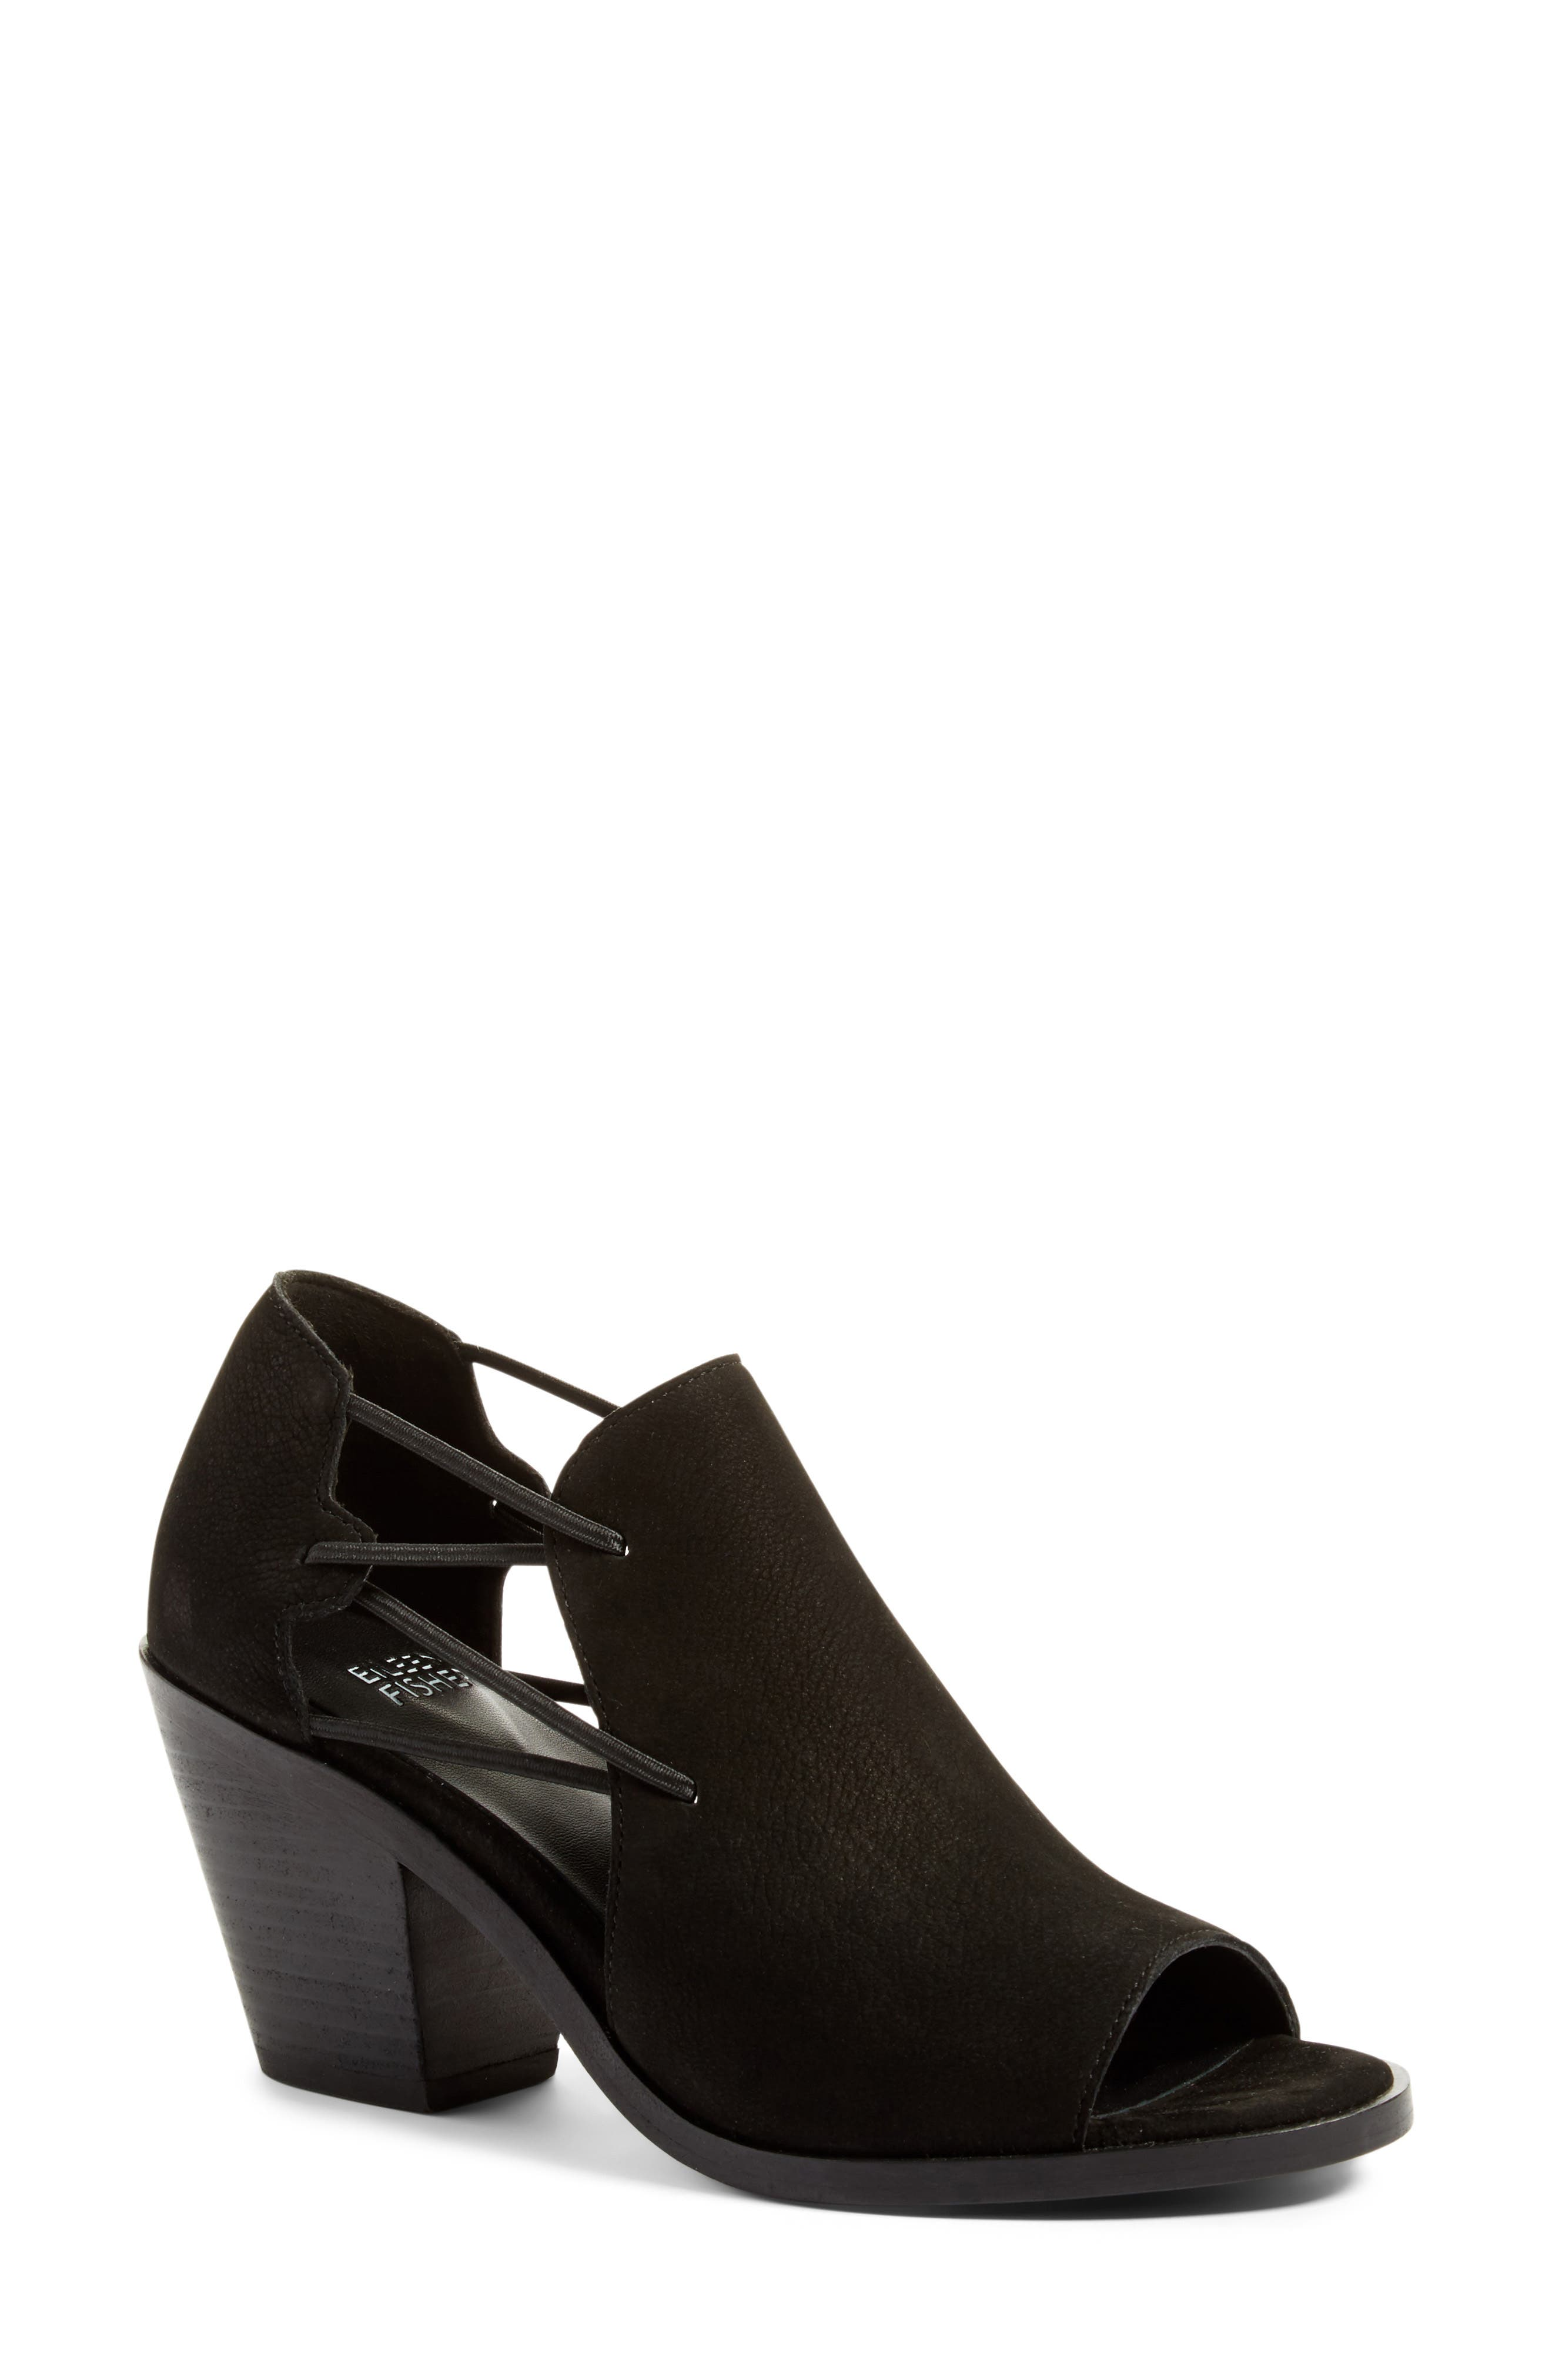 Nikki Peep Toe Sandal,                         Main,                         color, Black Leather